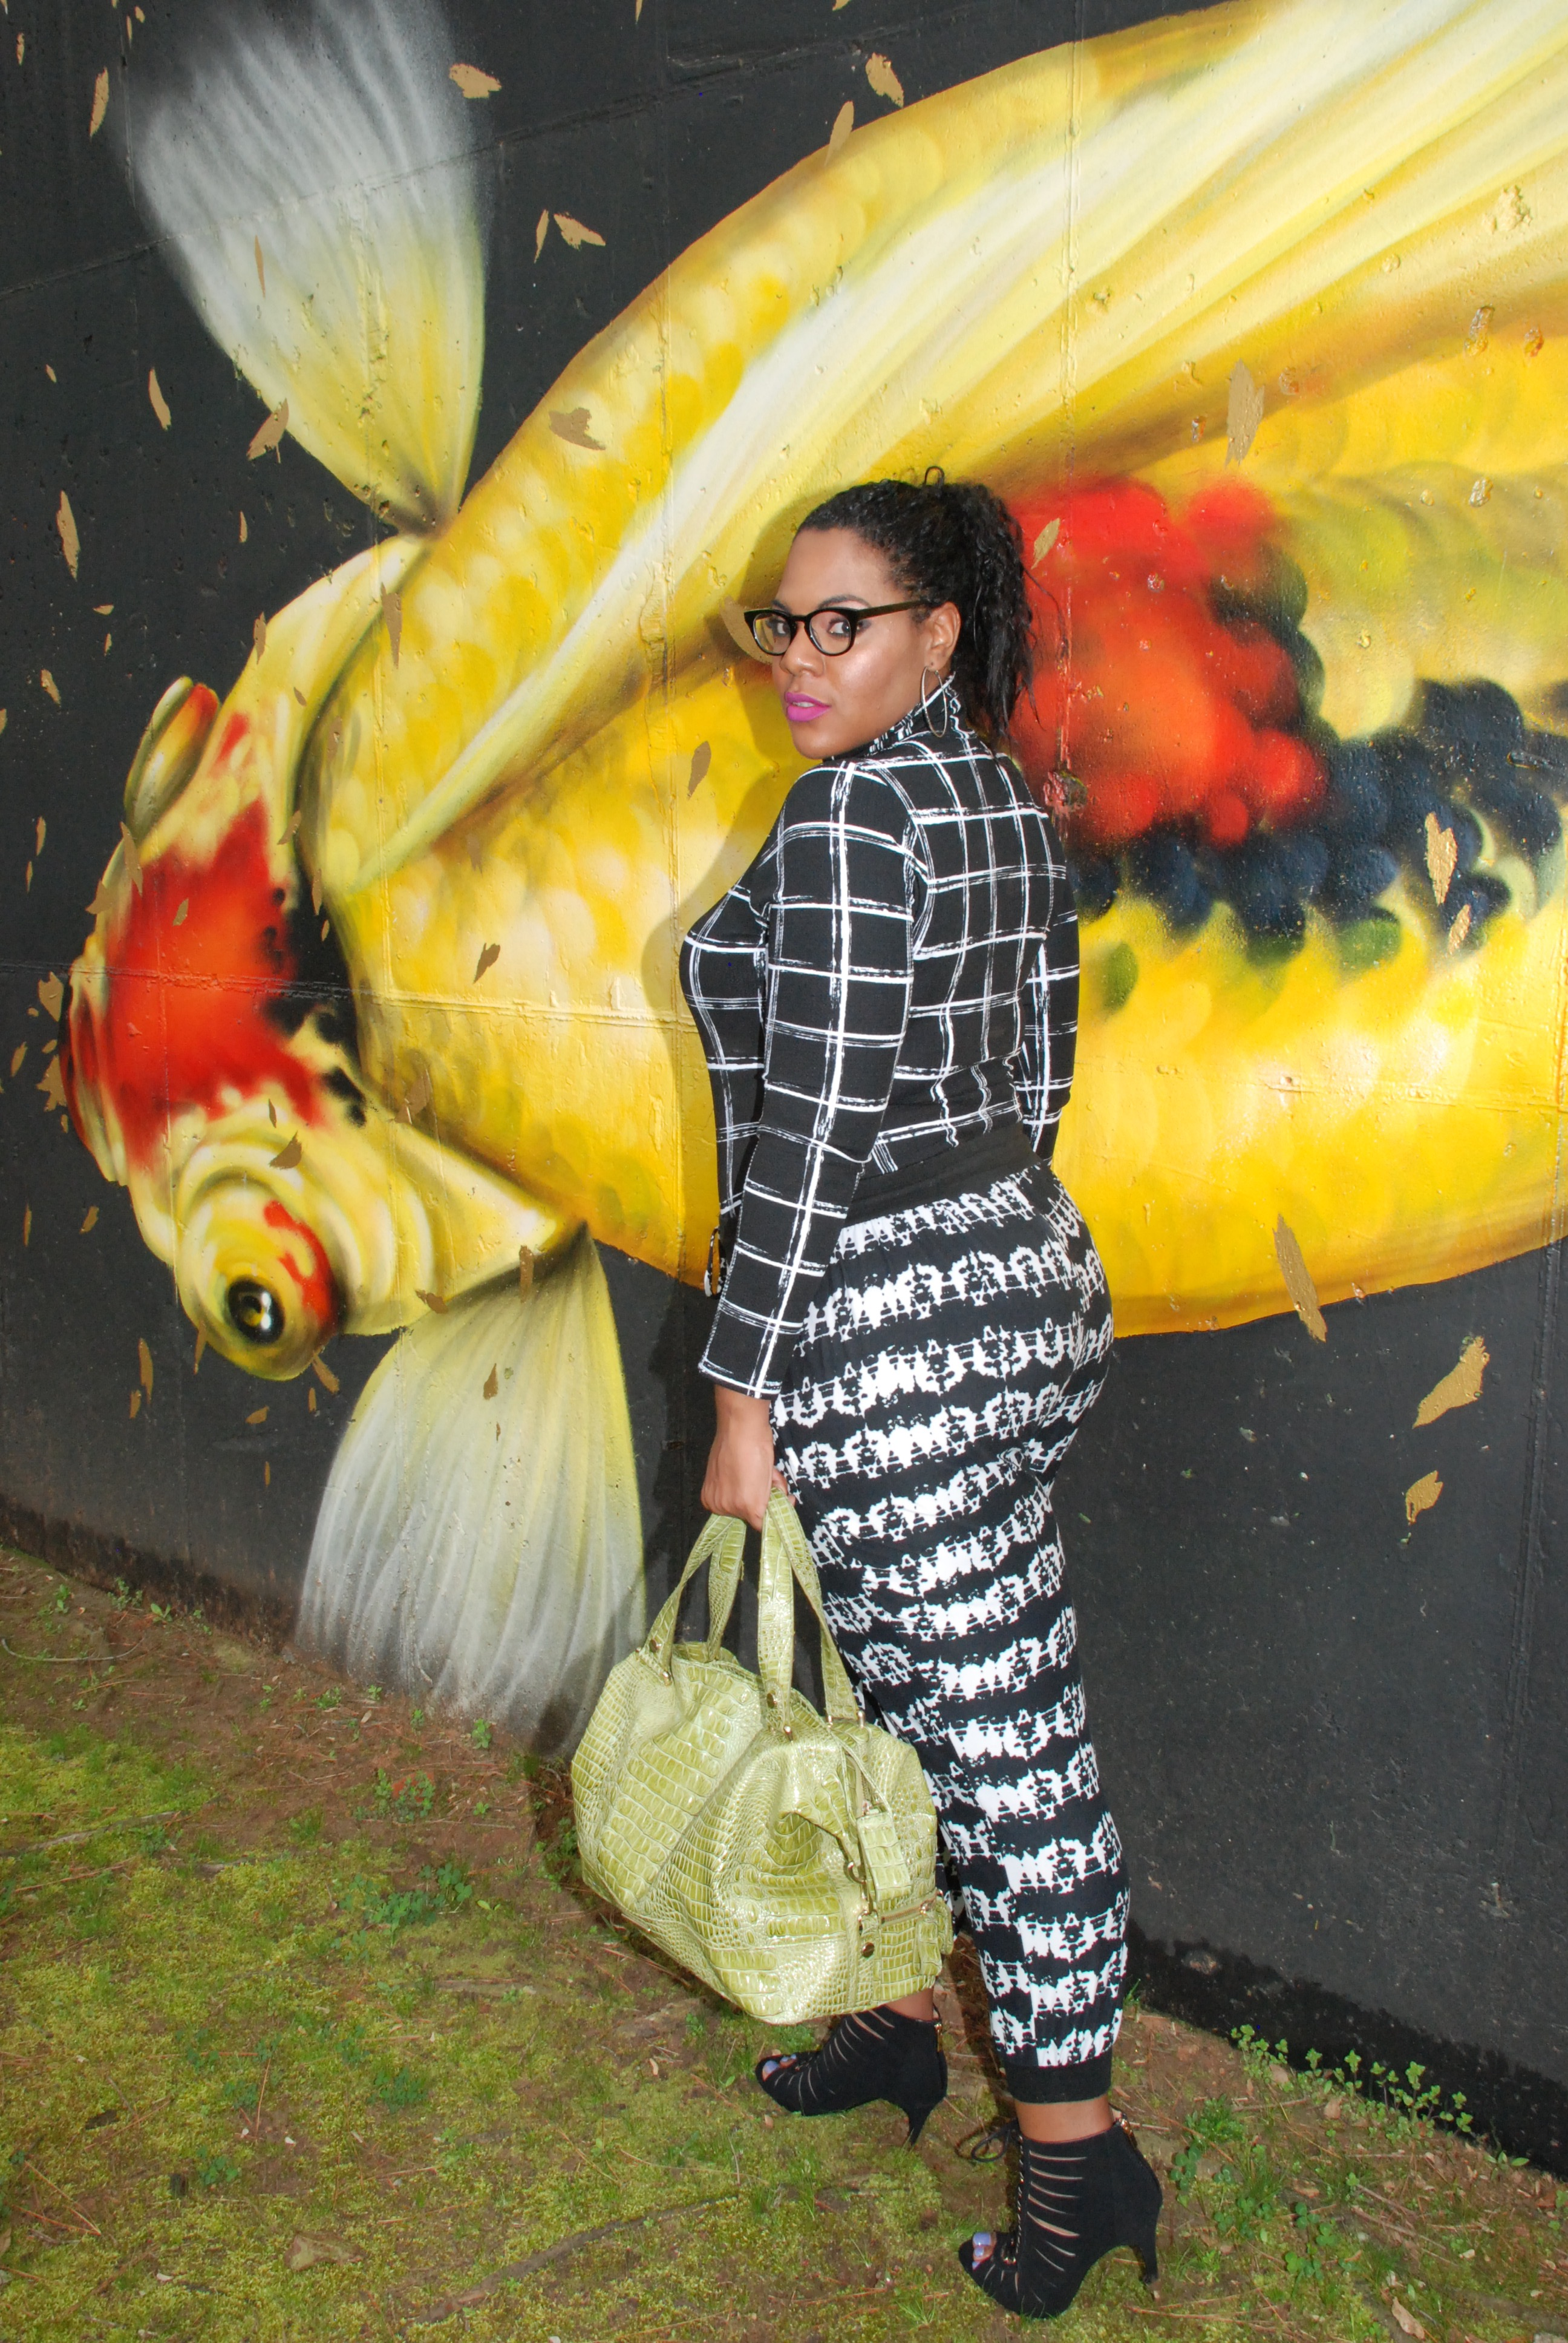 Gridlock: Her Style Plus graphic